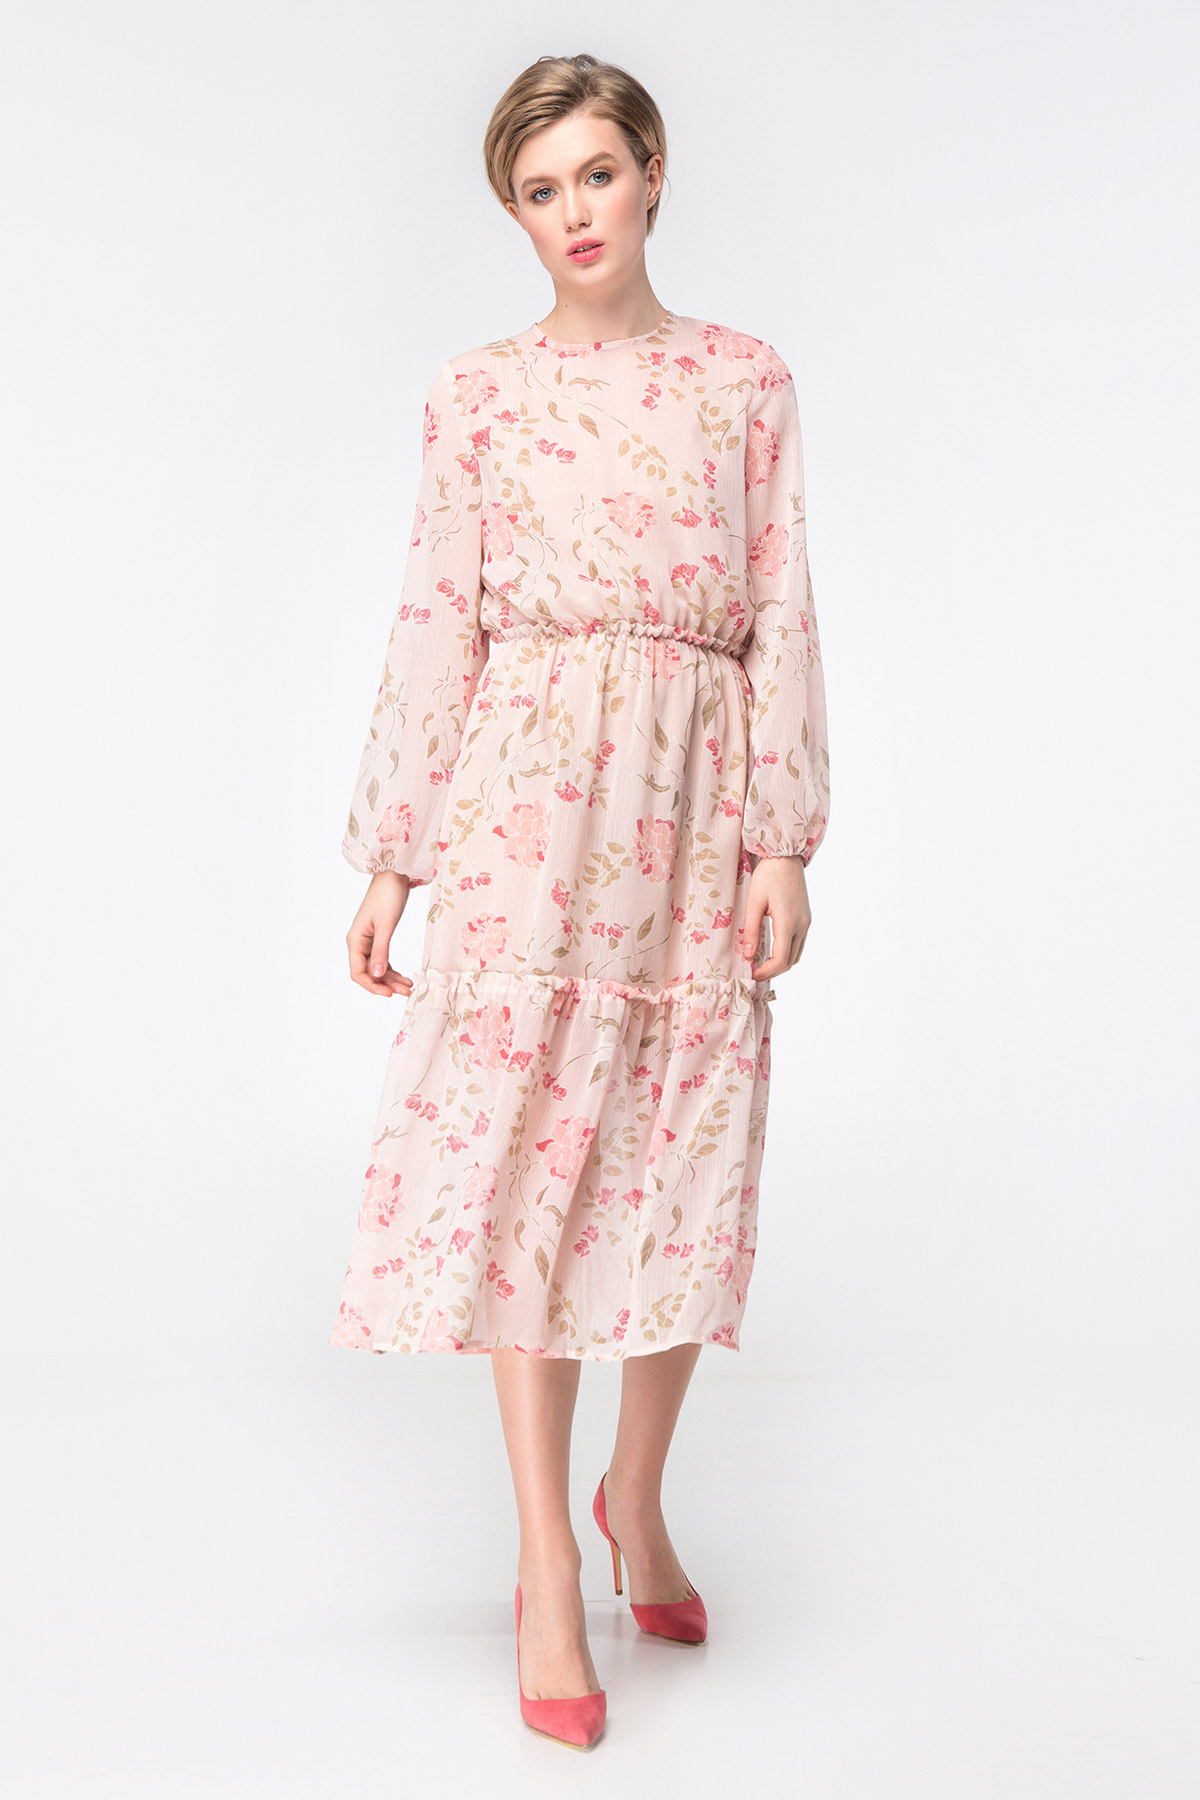 3e1d4a2cdca4 Beige midi dress with floral print photo 3 - MustHave online store